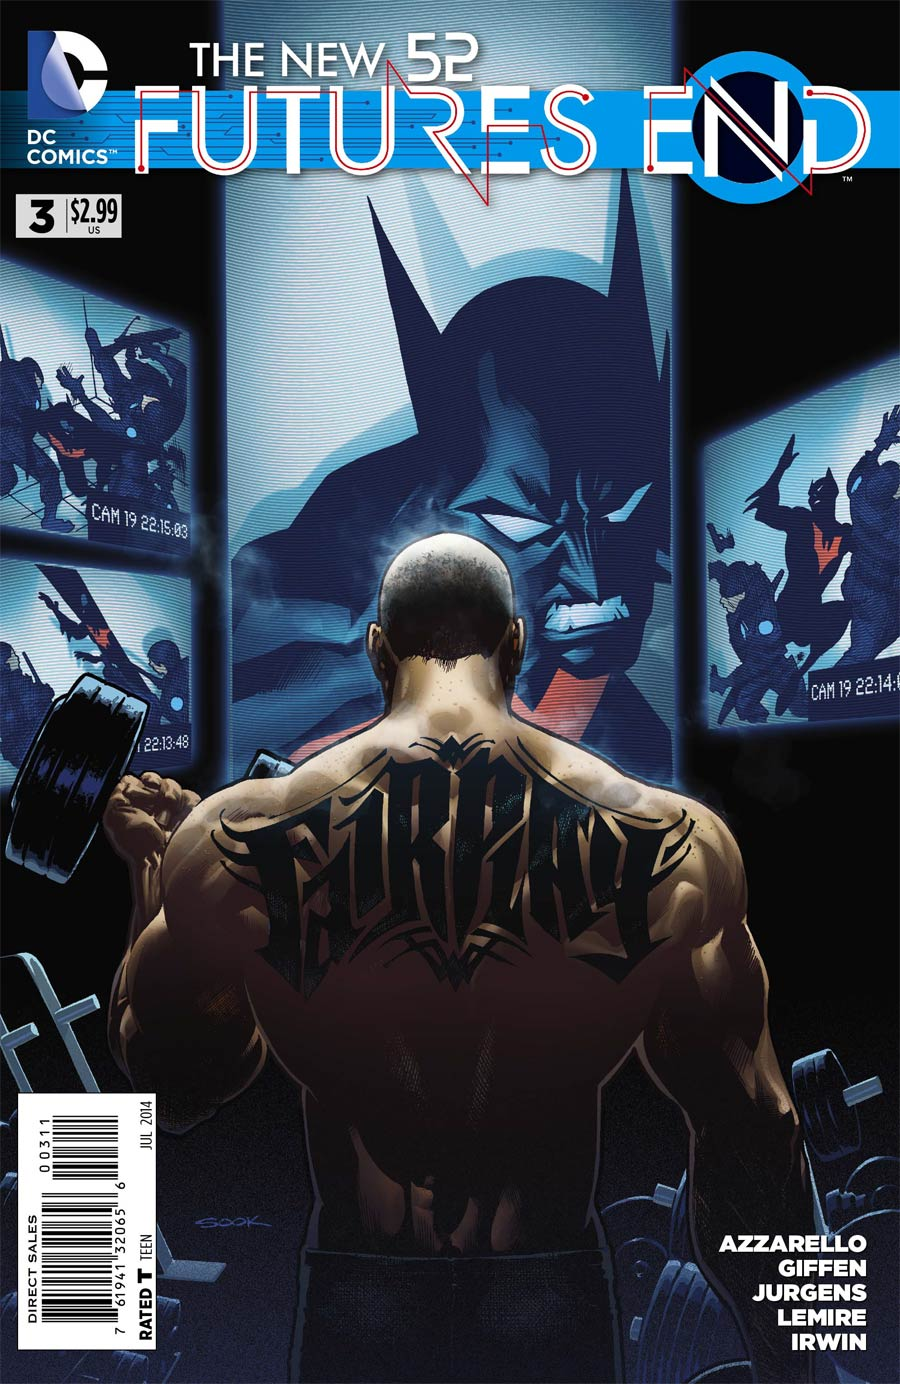 New 52 Futures End #3